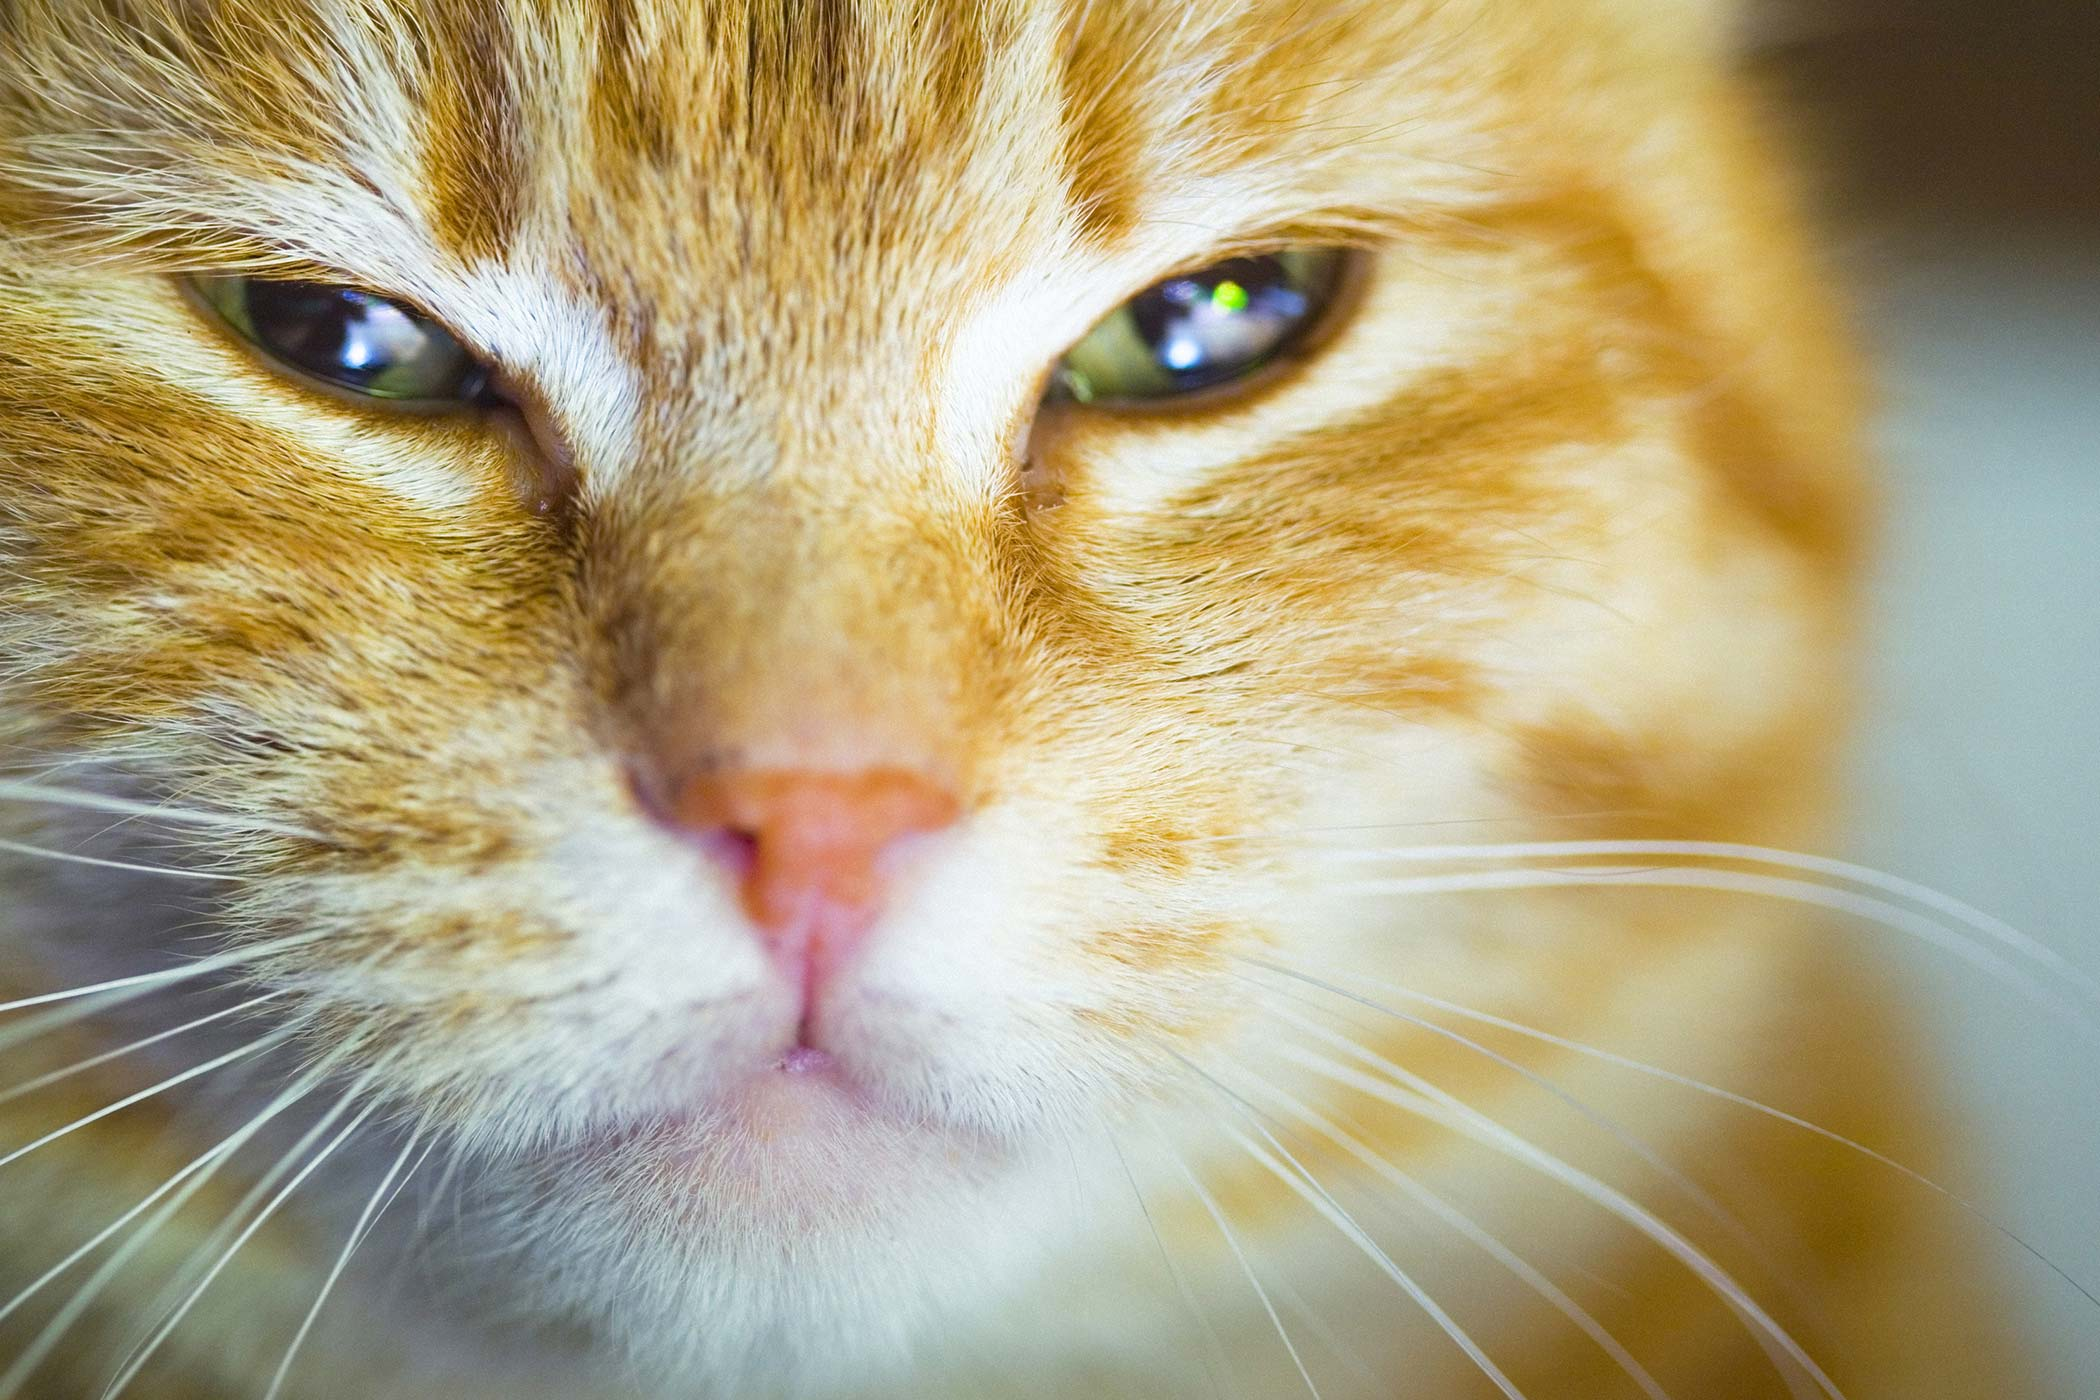 Droopy Eye in Cats